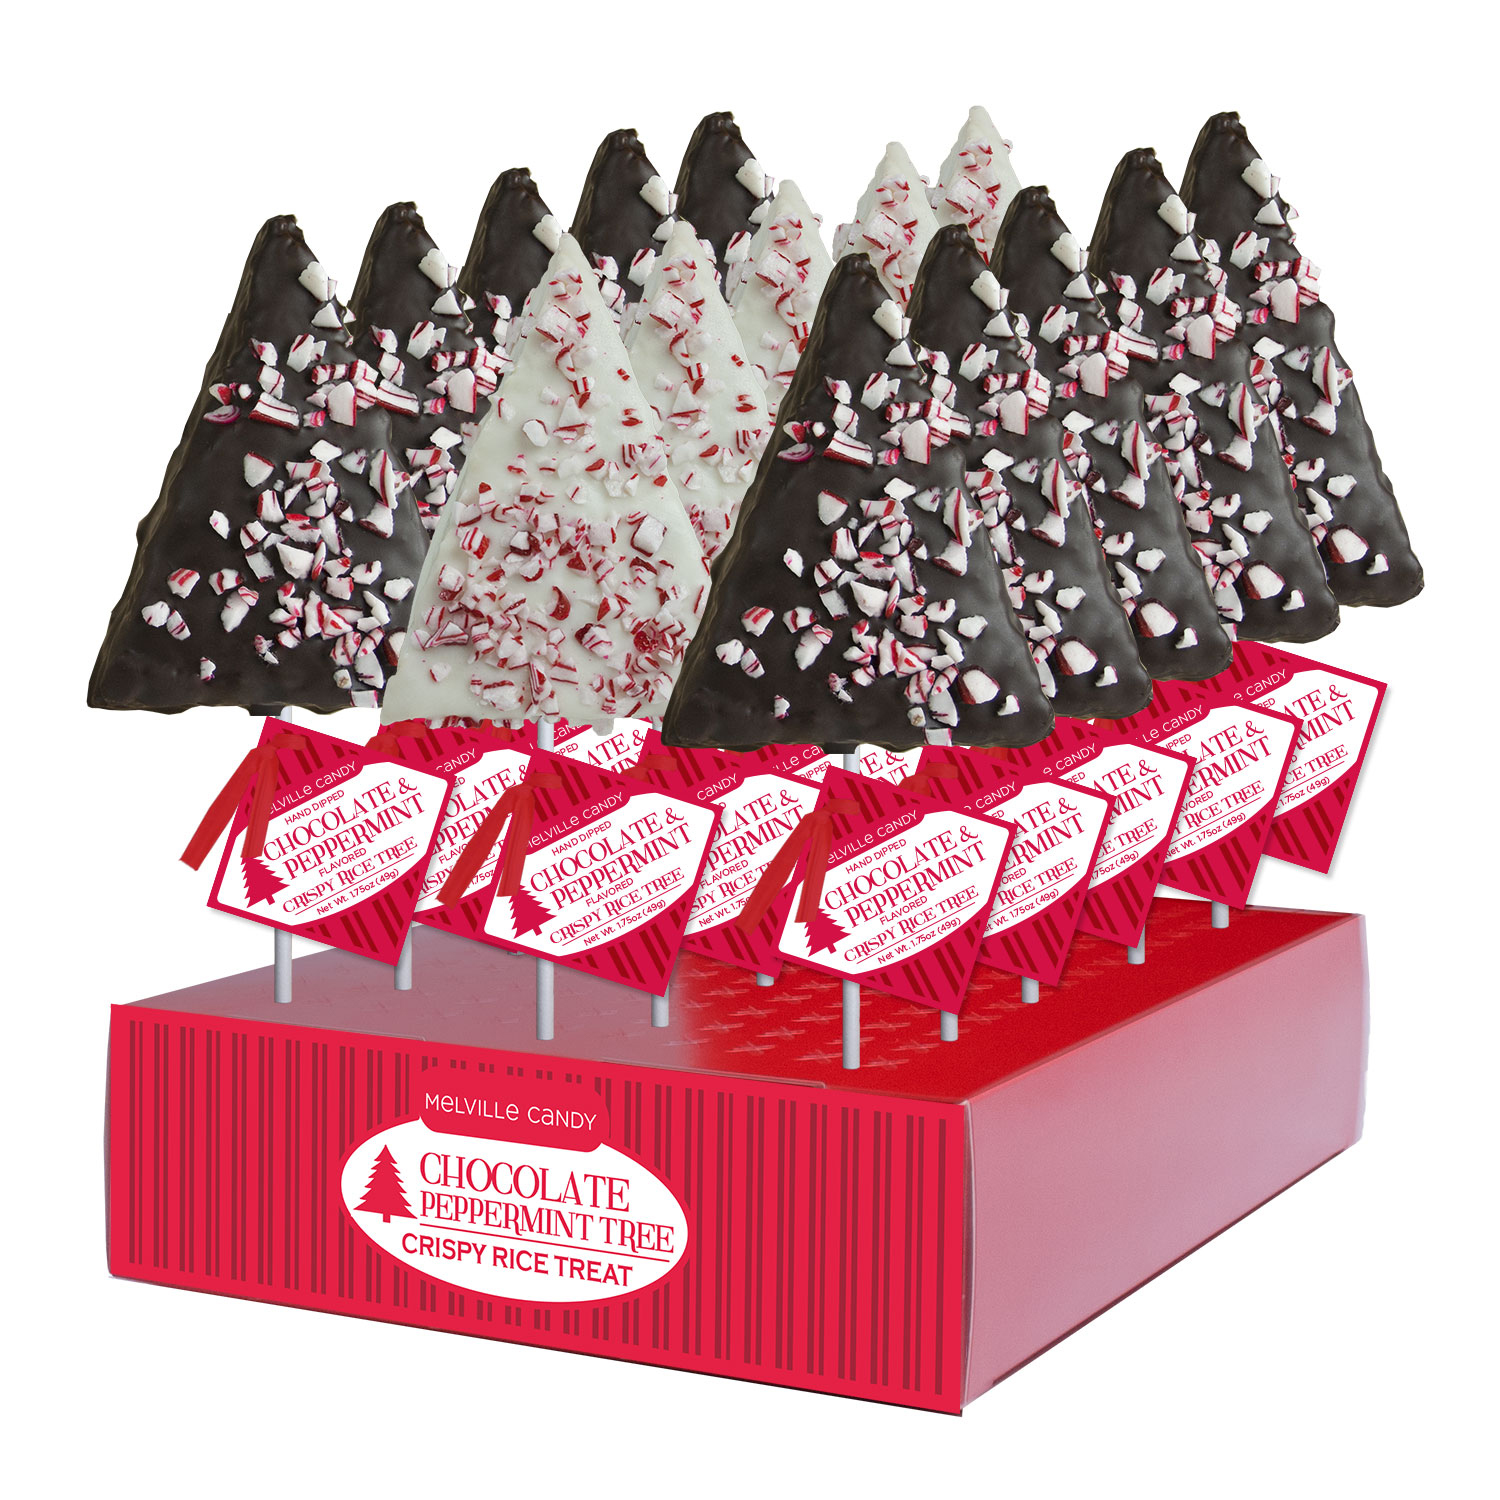 Peppermint Crispy Rice Trees: 12 Pack display